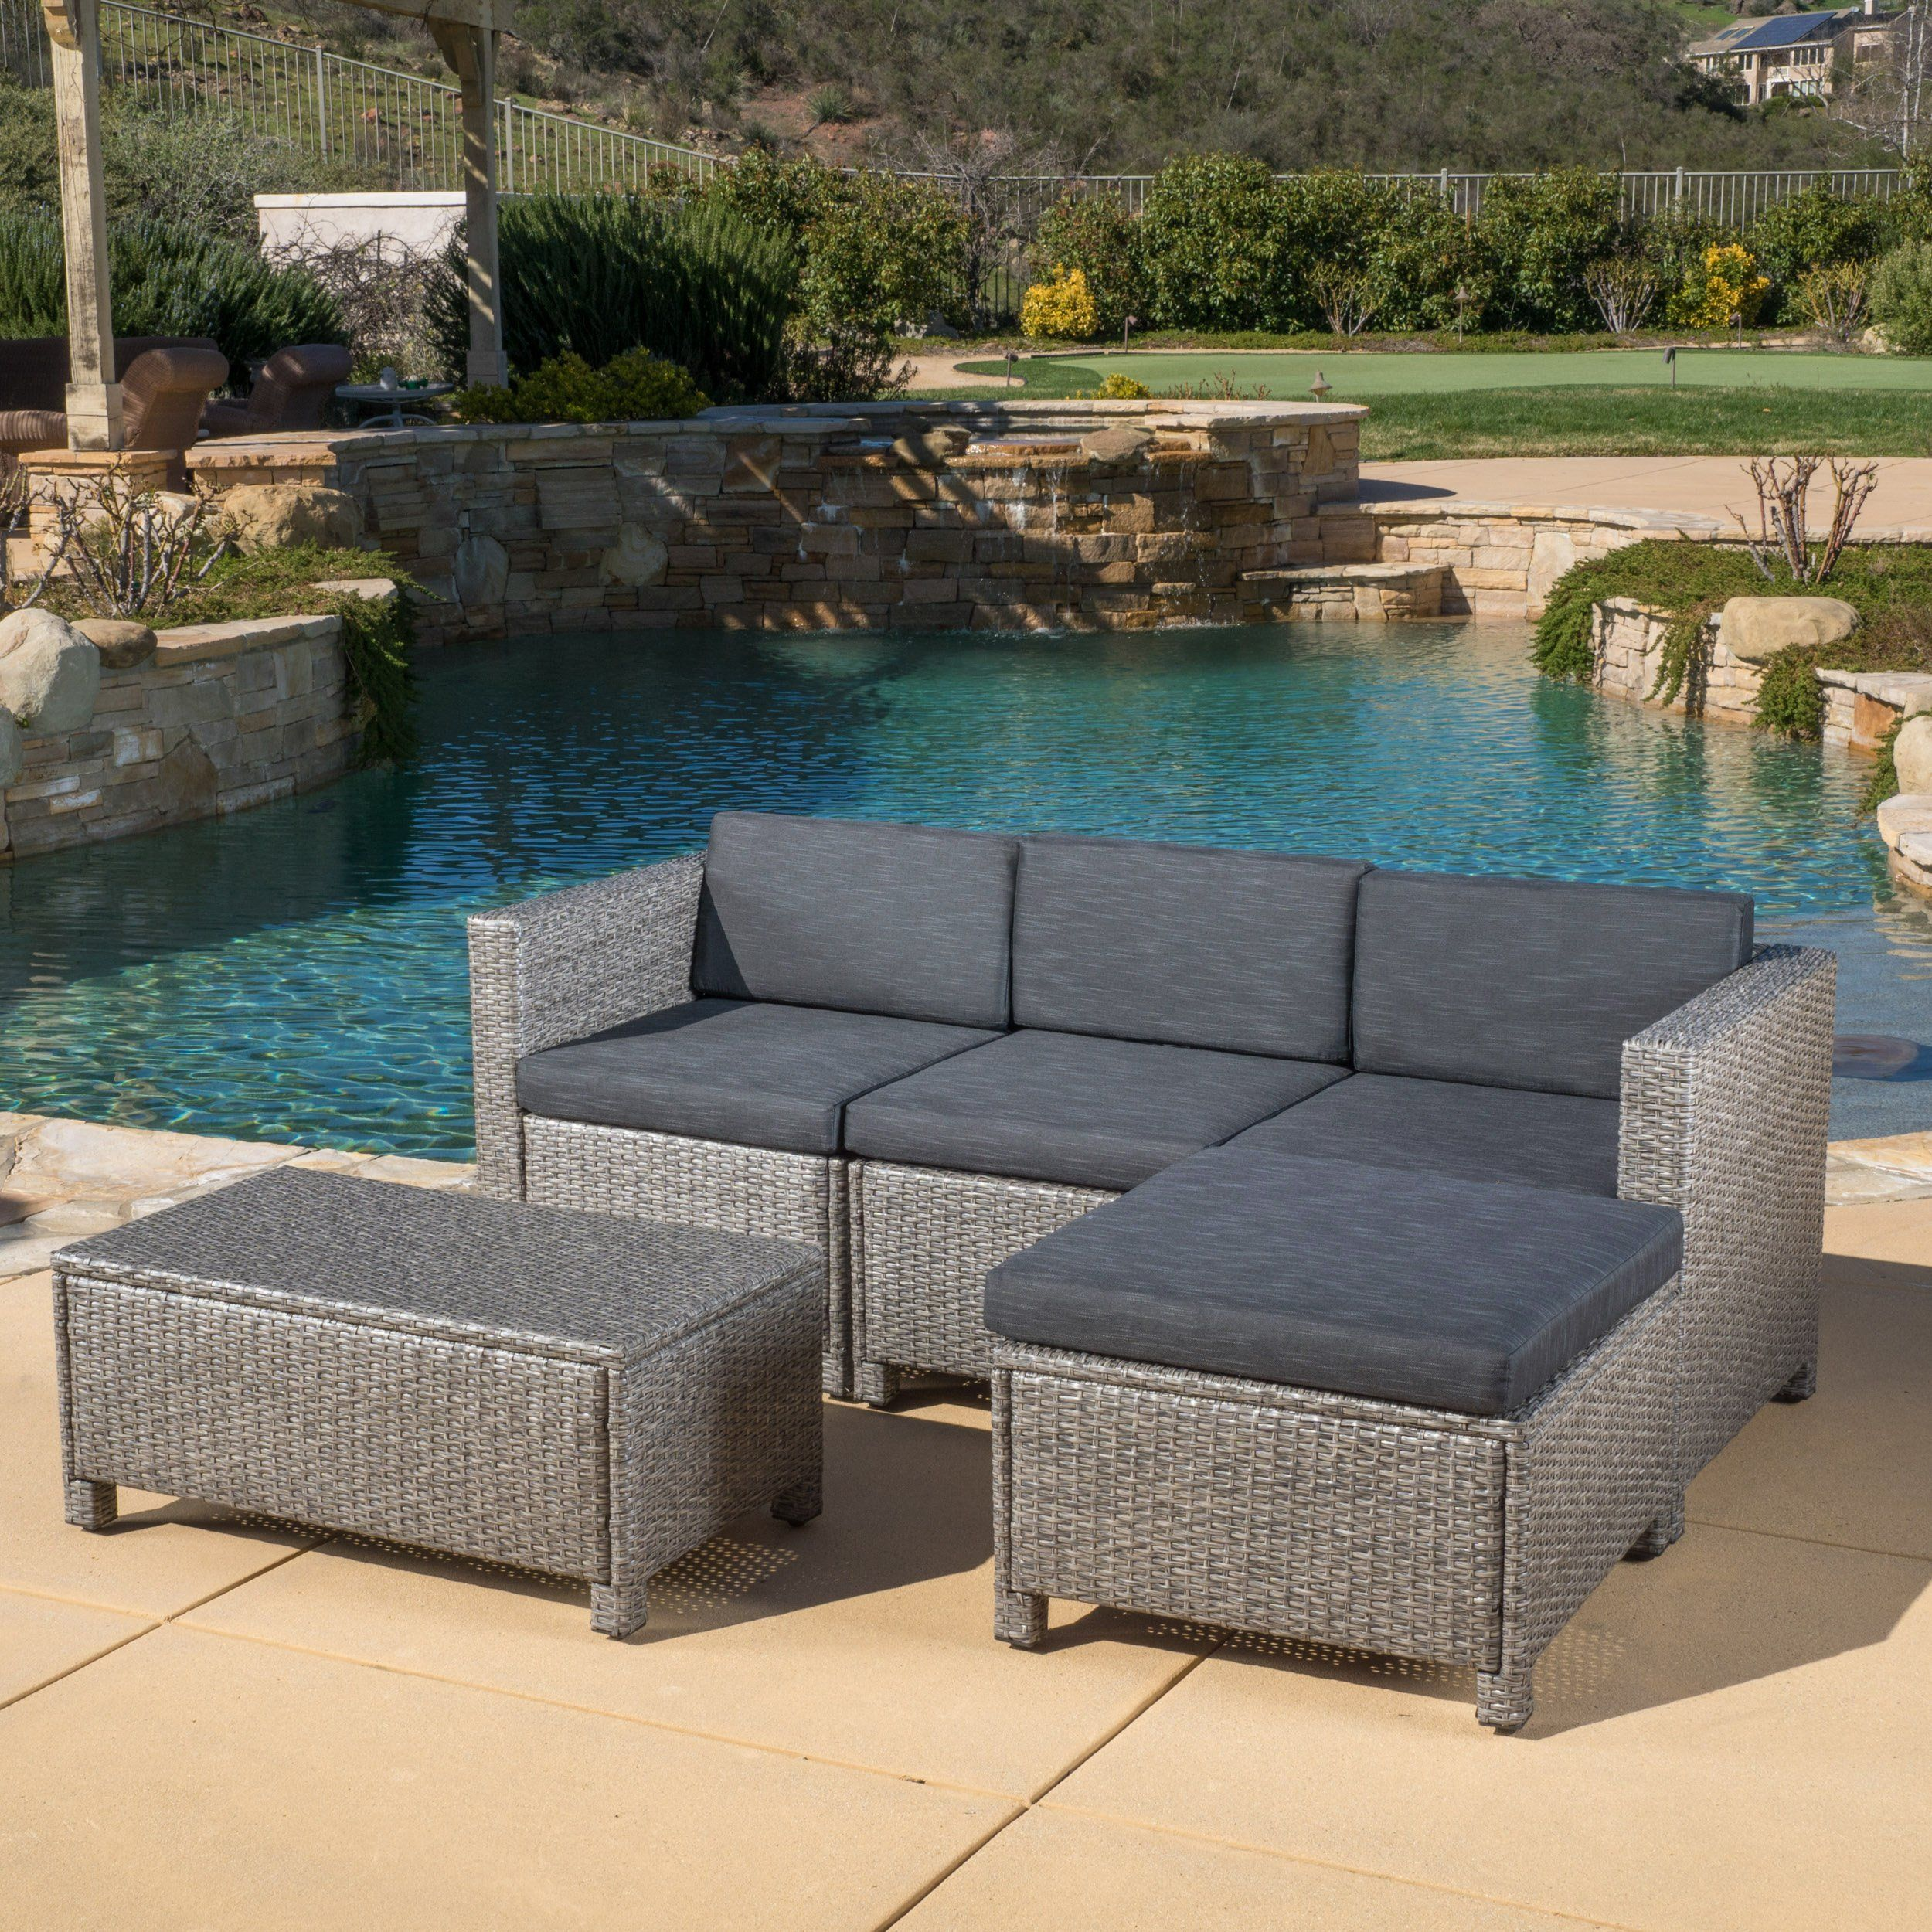 Lorita Outdoor 5 piece Grey Wicker Sectional Sofa Set with Black